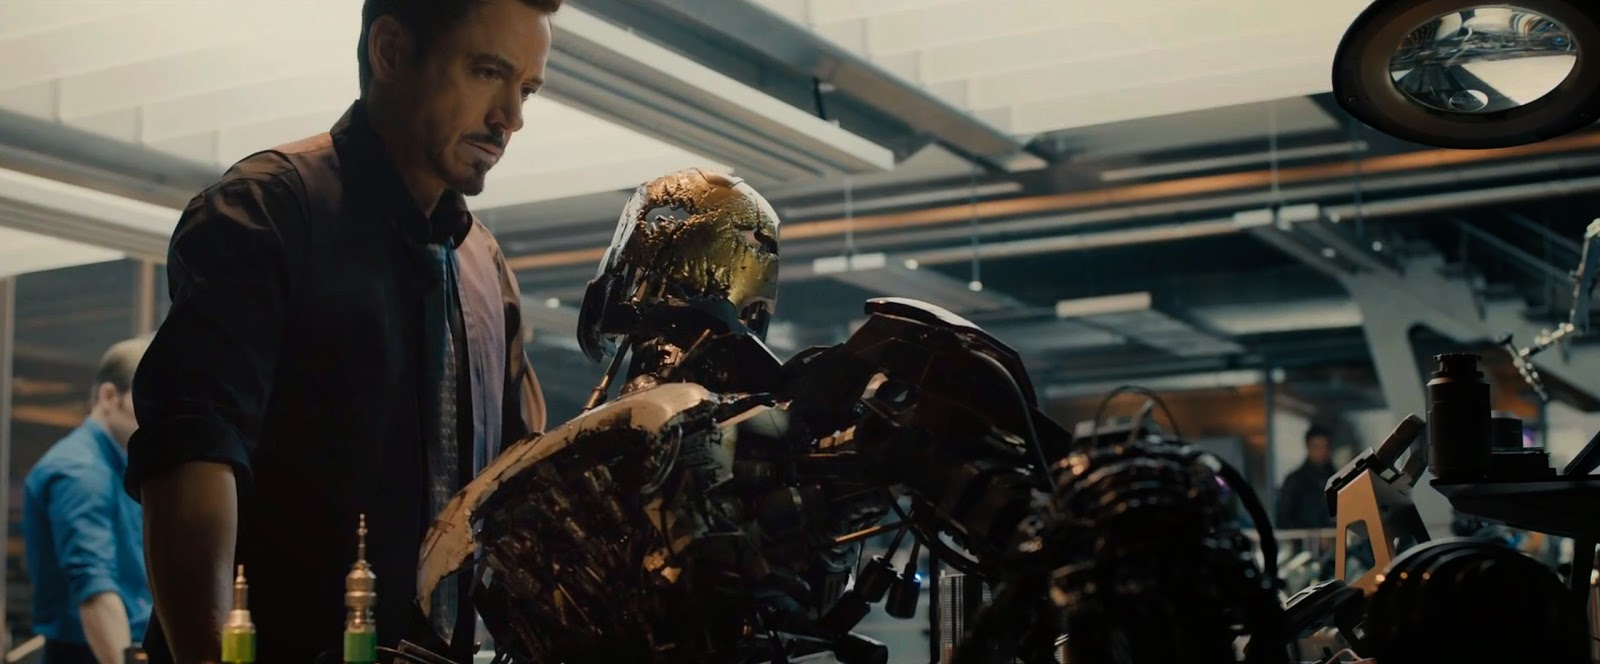 Age of Ultron, Avengers, Robert Downey Jr., Chris Hemsworth, Chris Evans, Scarlett Johansson Jeremy Renner, Ultron, Vision, Scarlet Witch, Marvels, Quicksilver